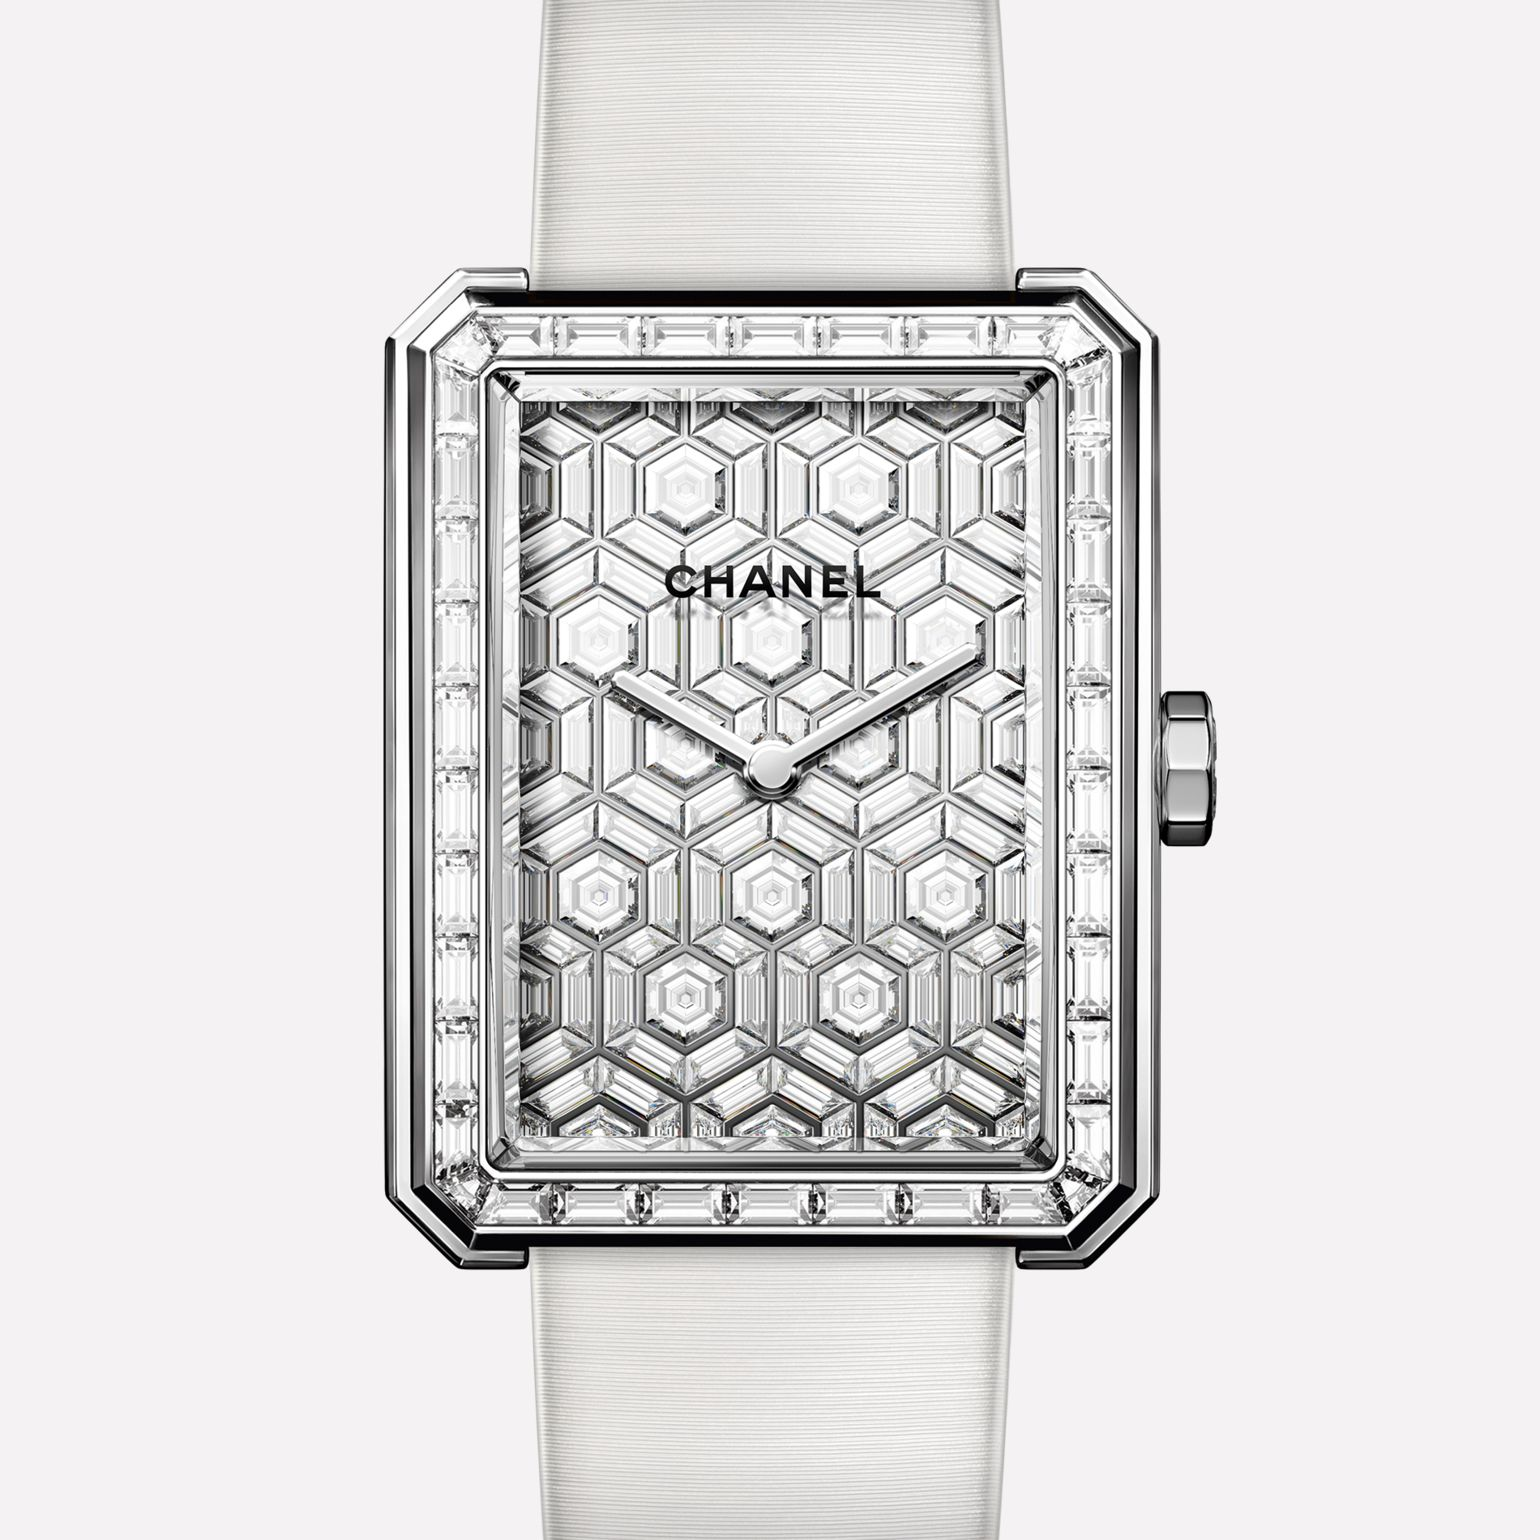 Montre BOY·FRIEND ARTY DIAMONDS Grand modèle, or blanc et cadran sertis de diamants, bracelet satin